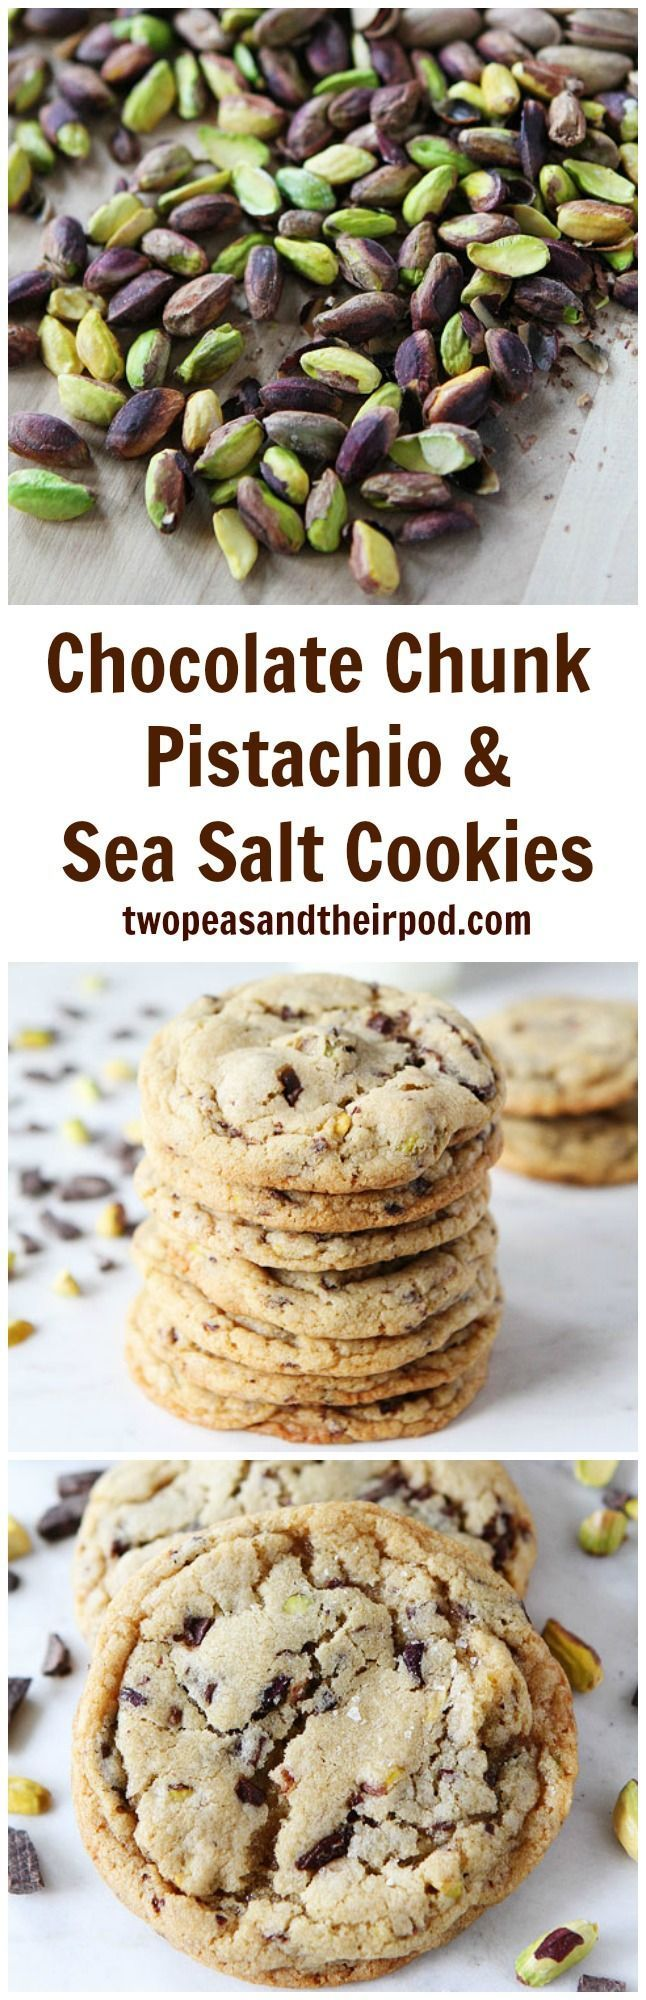 Chocolate Chunk, Pistachio, and Sea Salt Cookies Recipe on http://twopeasandtheirpod.com Soft and chewy chocolate chunk cookies with pistachios and a sprinkling of sea salt. These are the BEST cookies! #cookies #bake